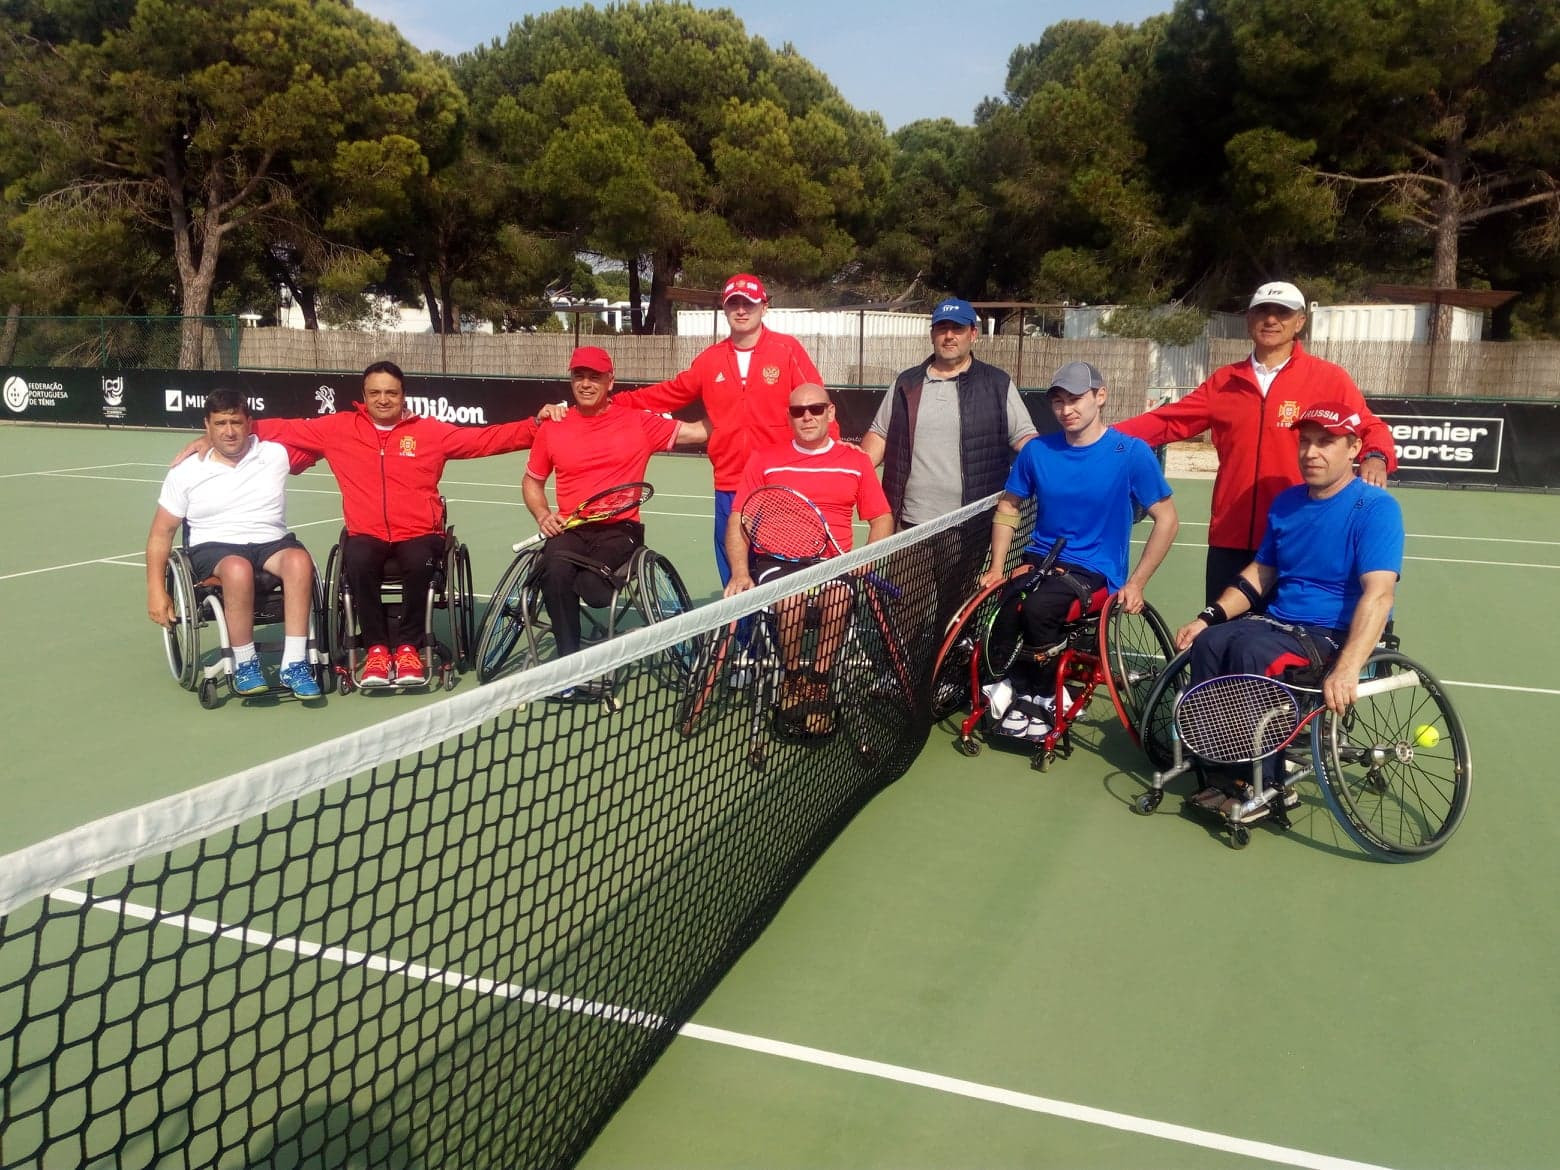 Hosts Portugal whitewashed by Russia as ITF World Team Cup European Qualifier begins